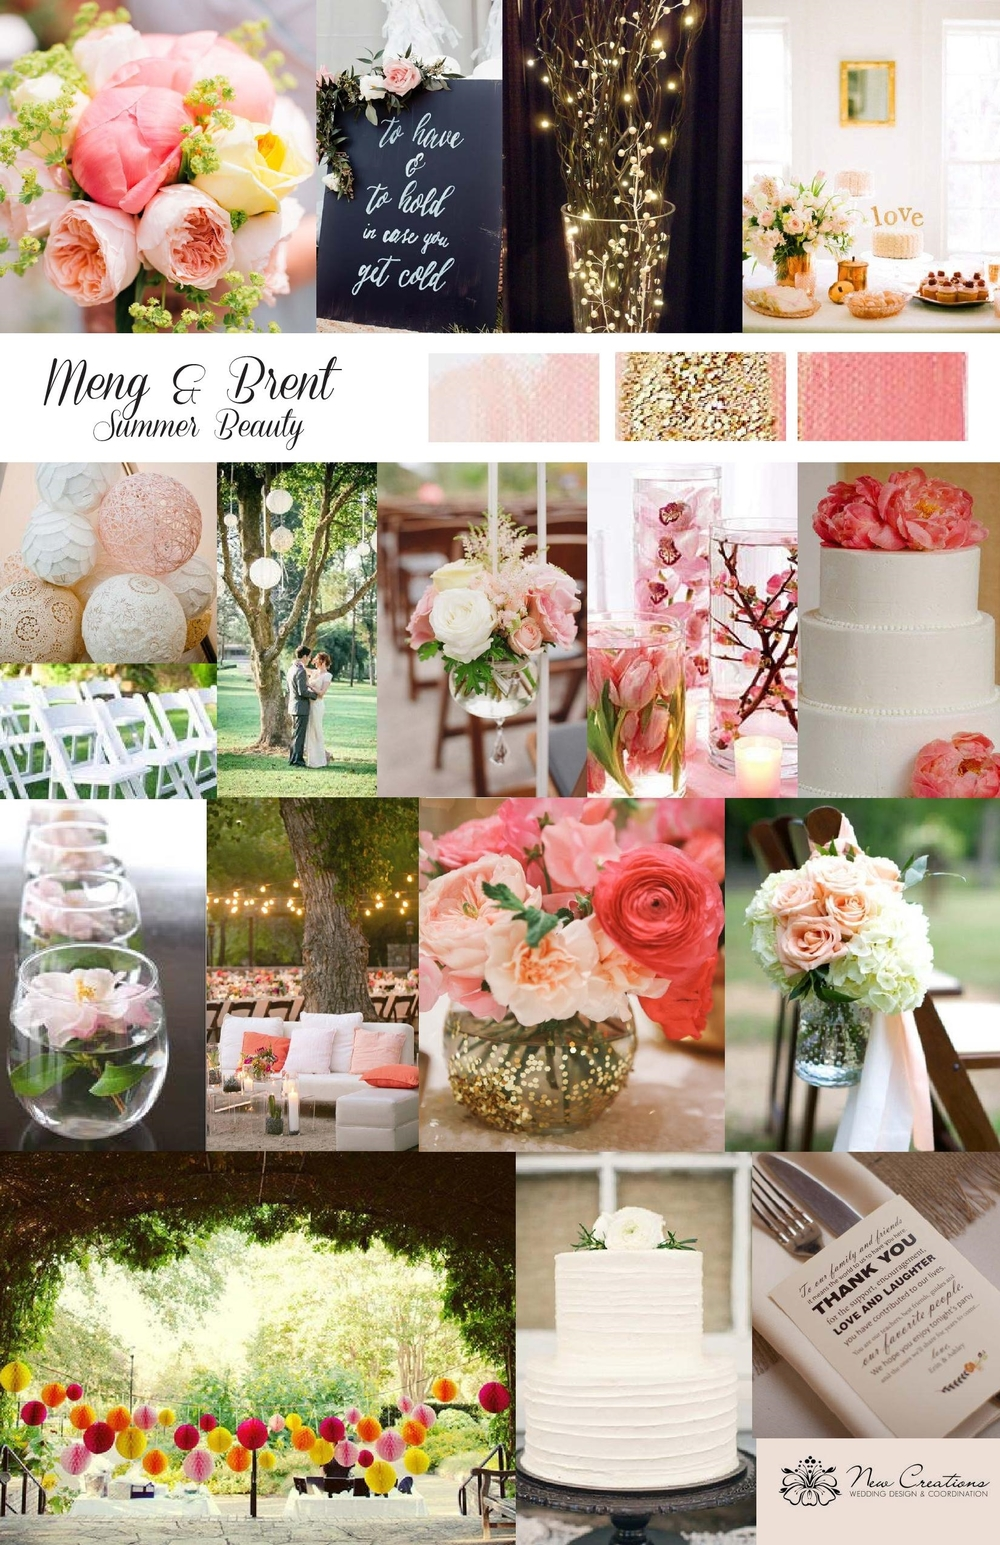 Original Inspiration Board For Meng and Brent Created by New Creations Weddings | Pink and Peach Wedding